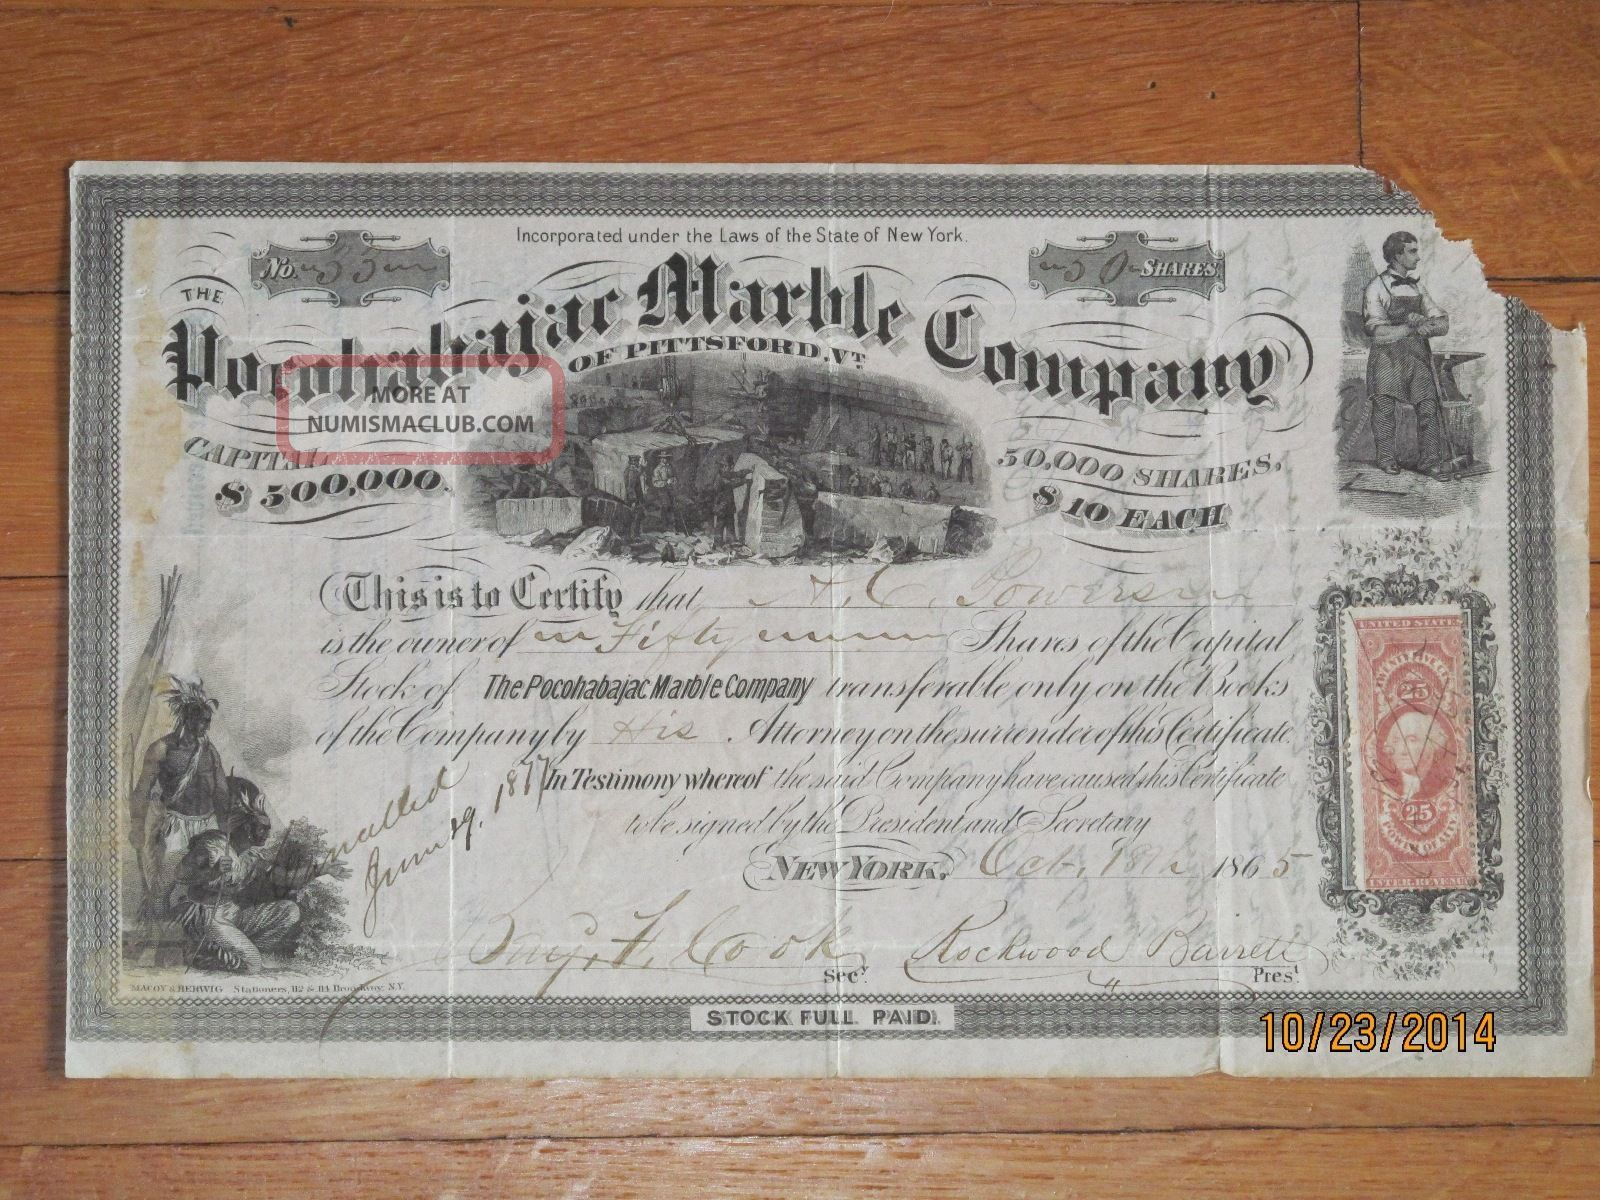 1865 Pocohabajac Marble Company Stock Certificate Of Pittsford,  Vermont Stocks & Bonds, Scripophily photo